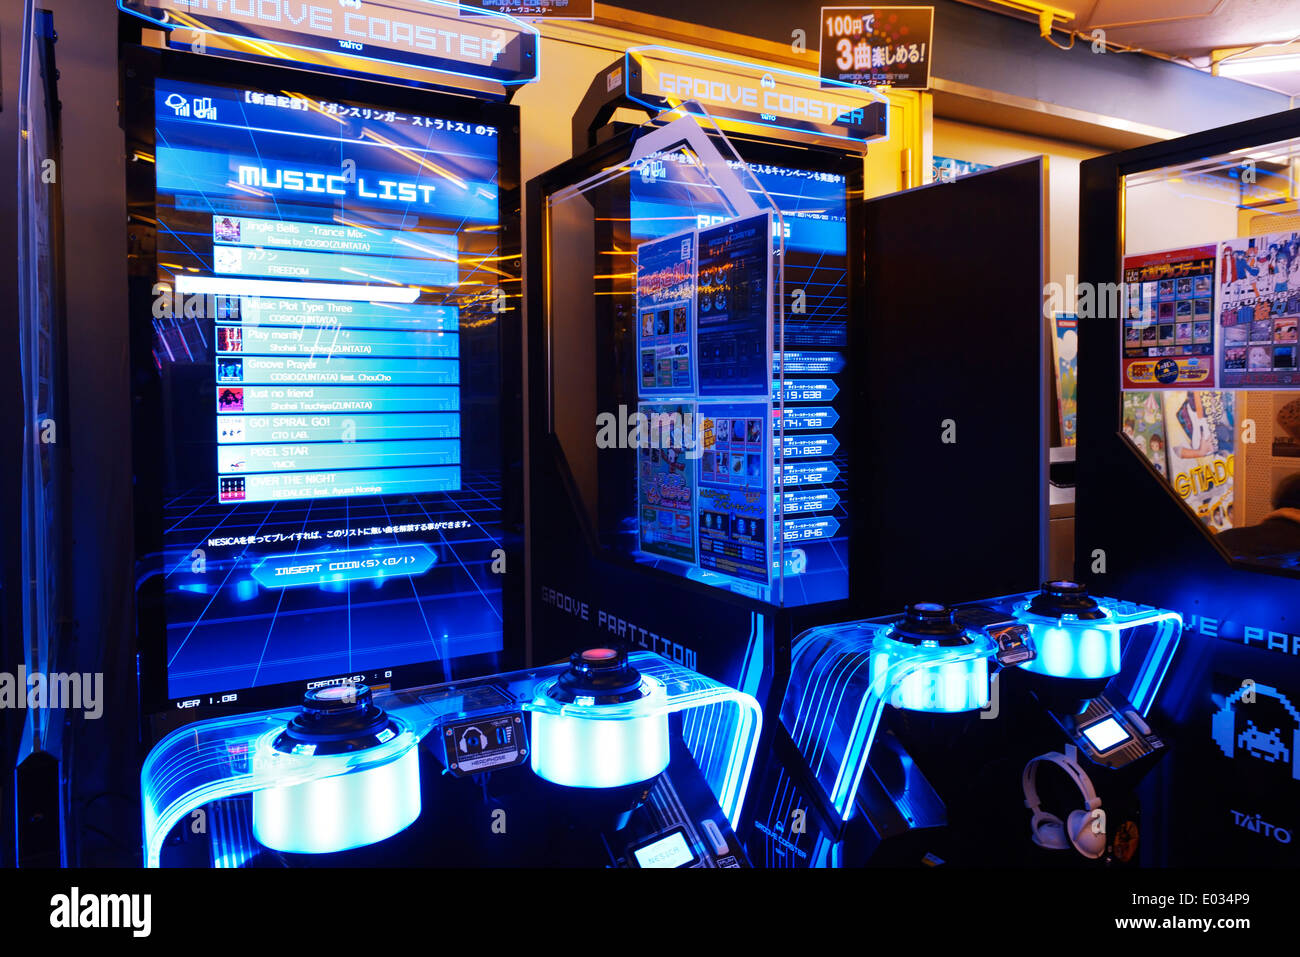 Groove Coaster music arcade slot machines in Tokyo, Japan - Stock Image